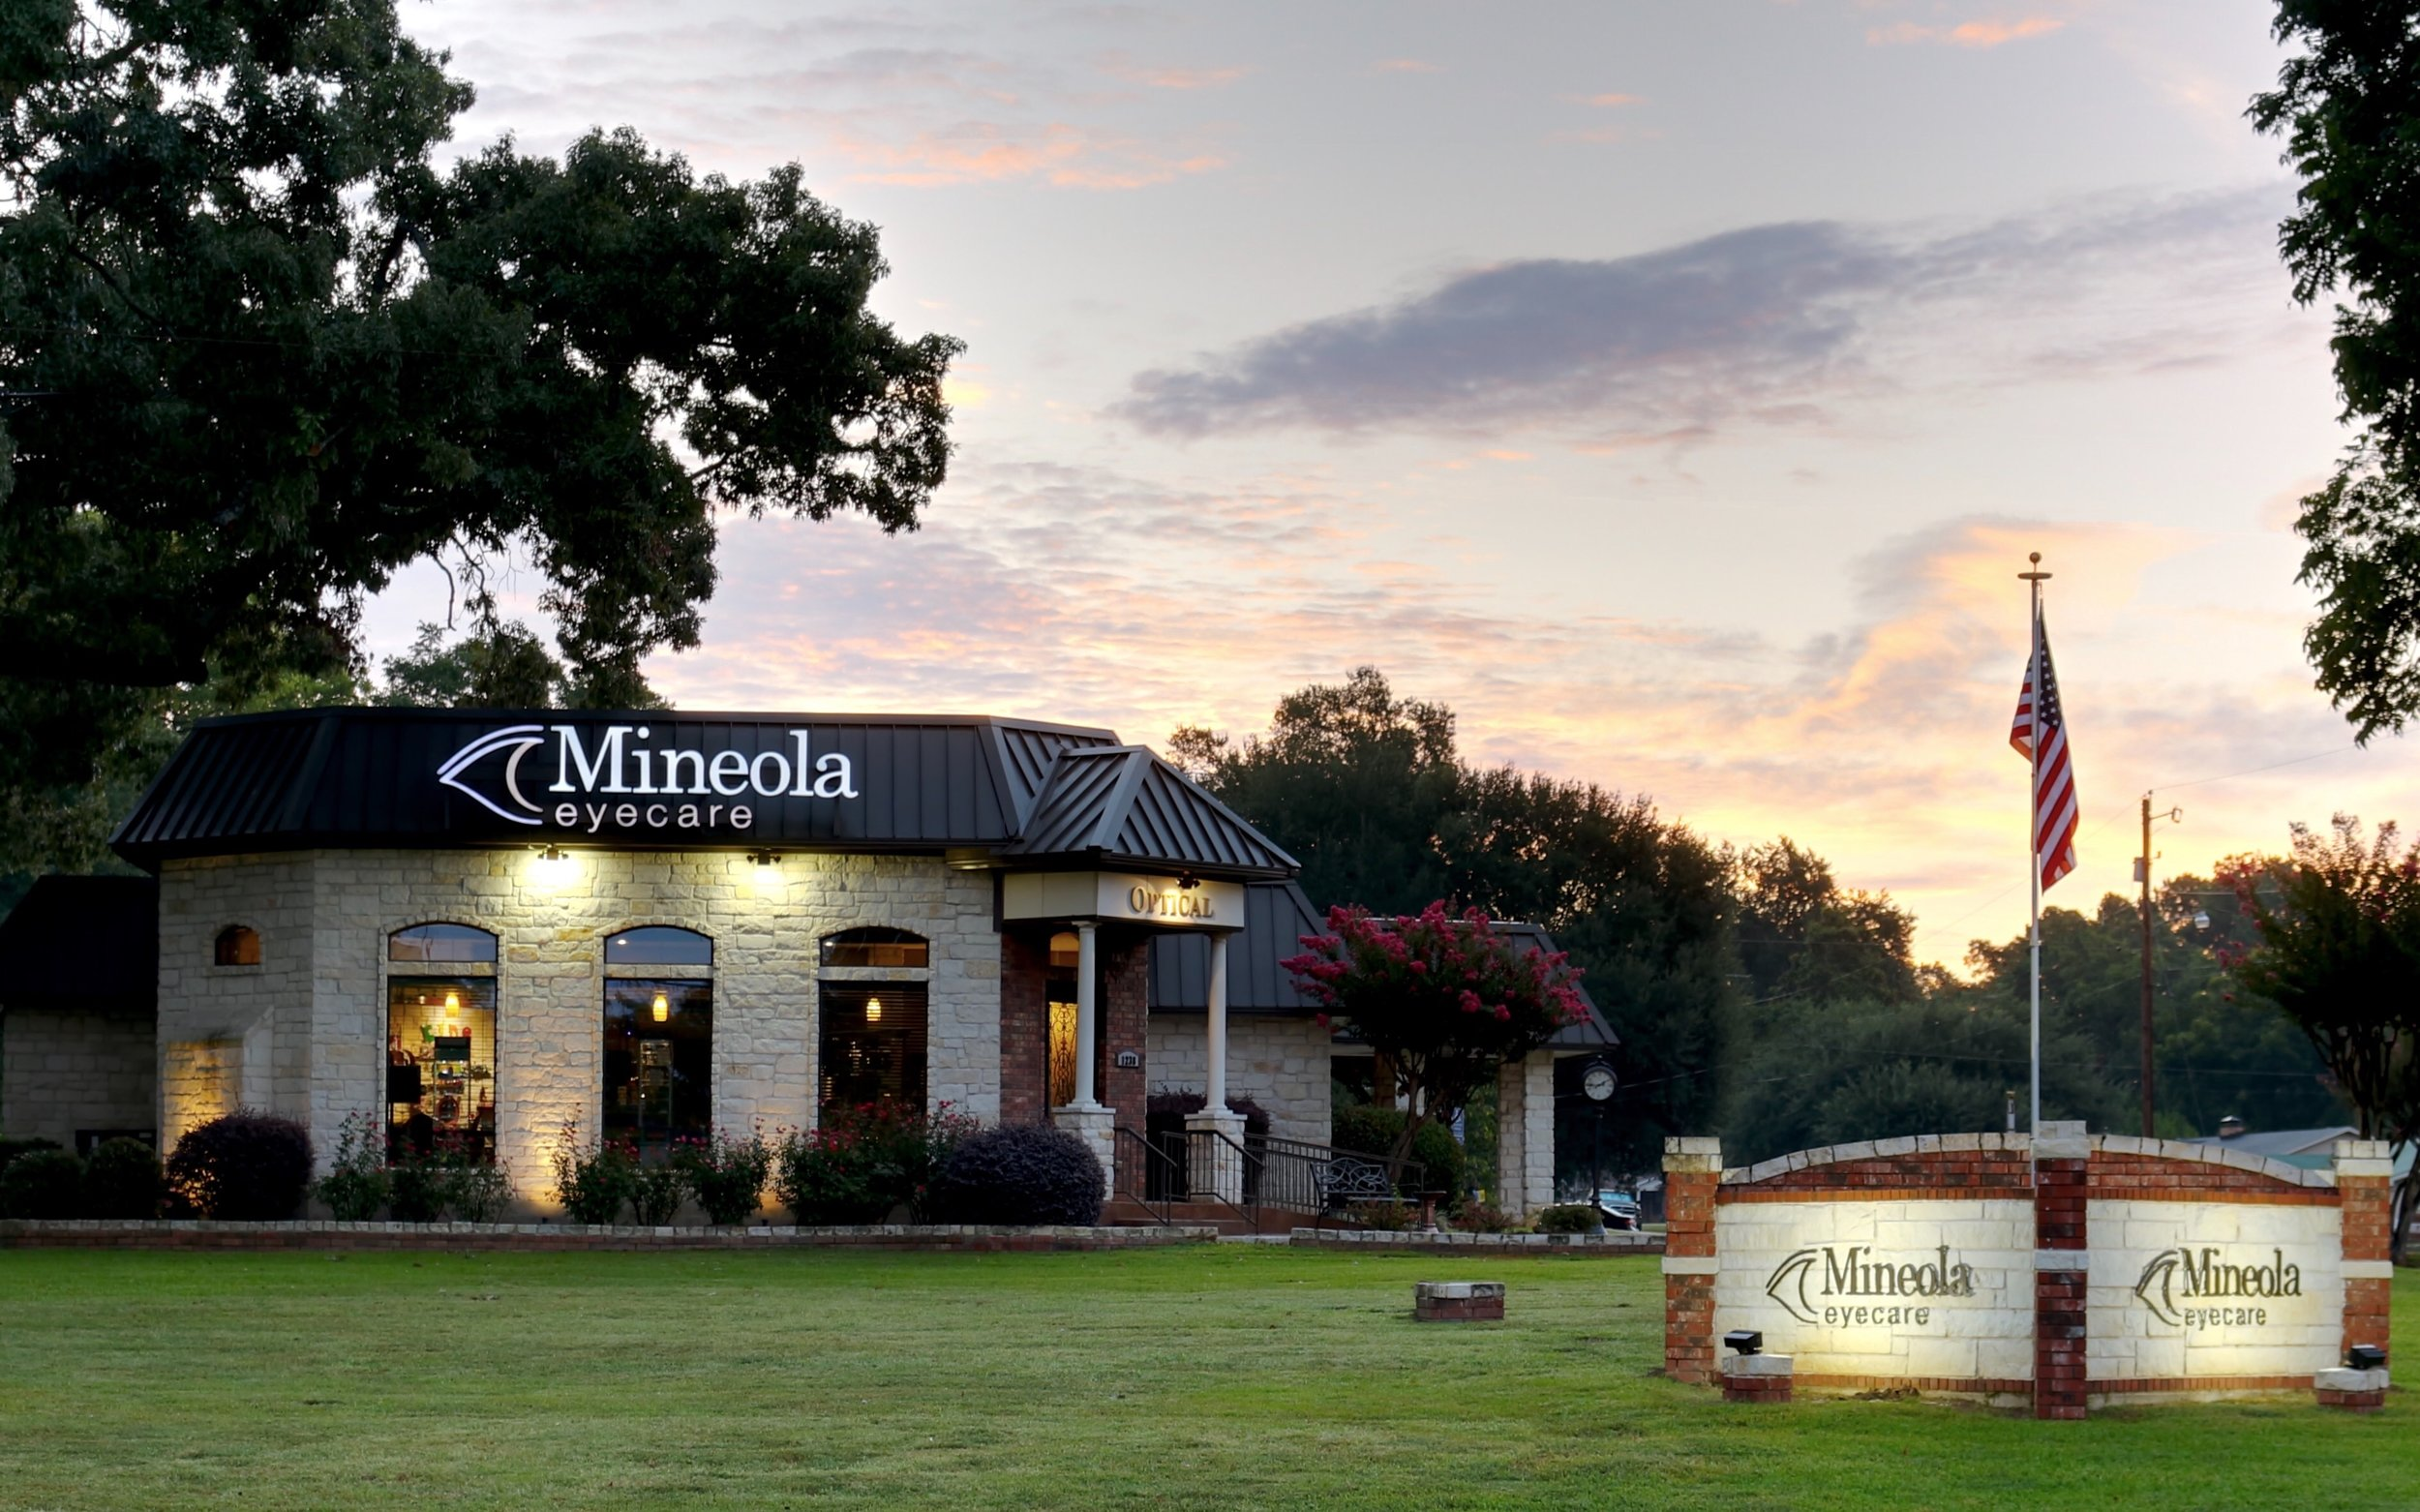 Sunrise at Mineola Eyecare